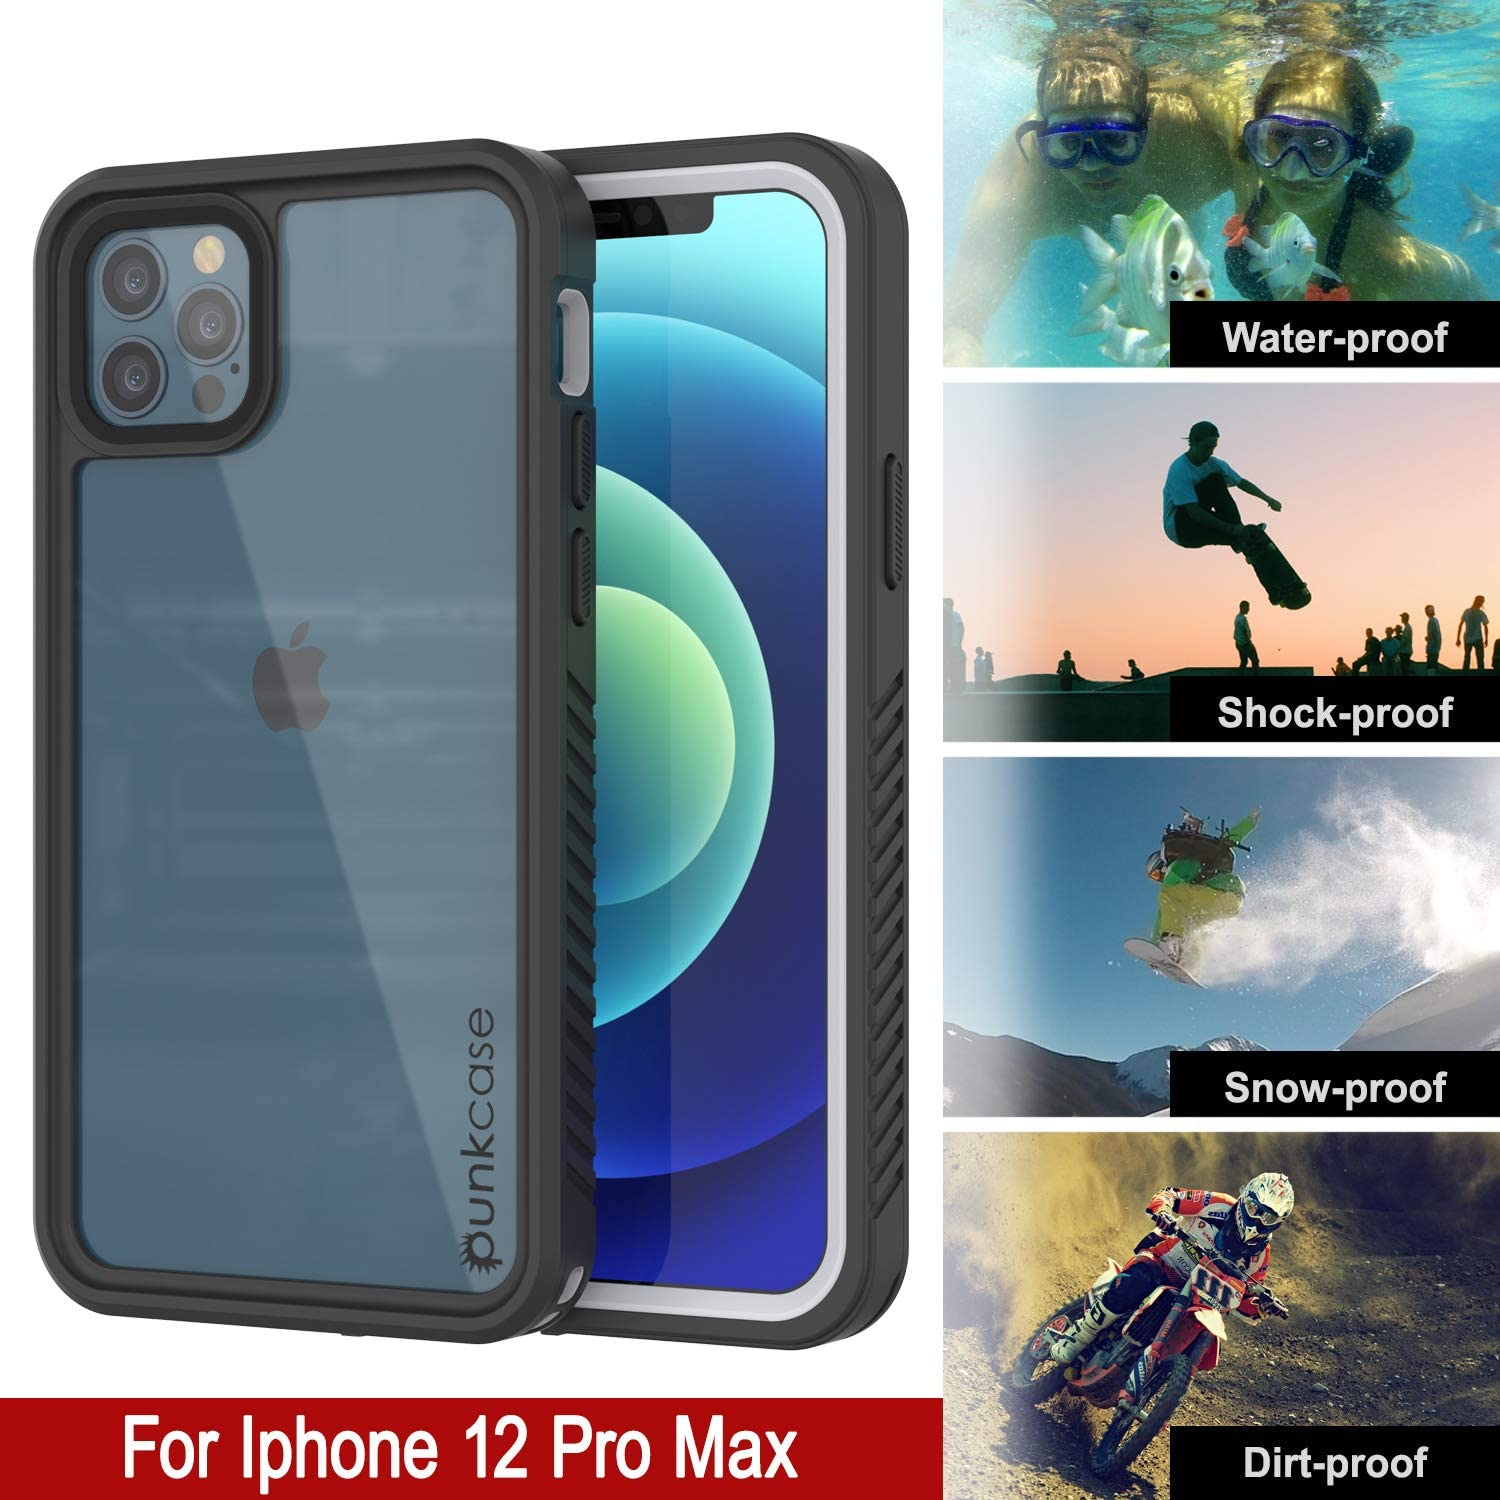 iPhone 12 Pro Max Waterproof Case, Punkcase [Extreme Series] Armor Cover W/ Built In Screen Protector [White]